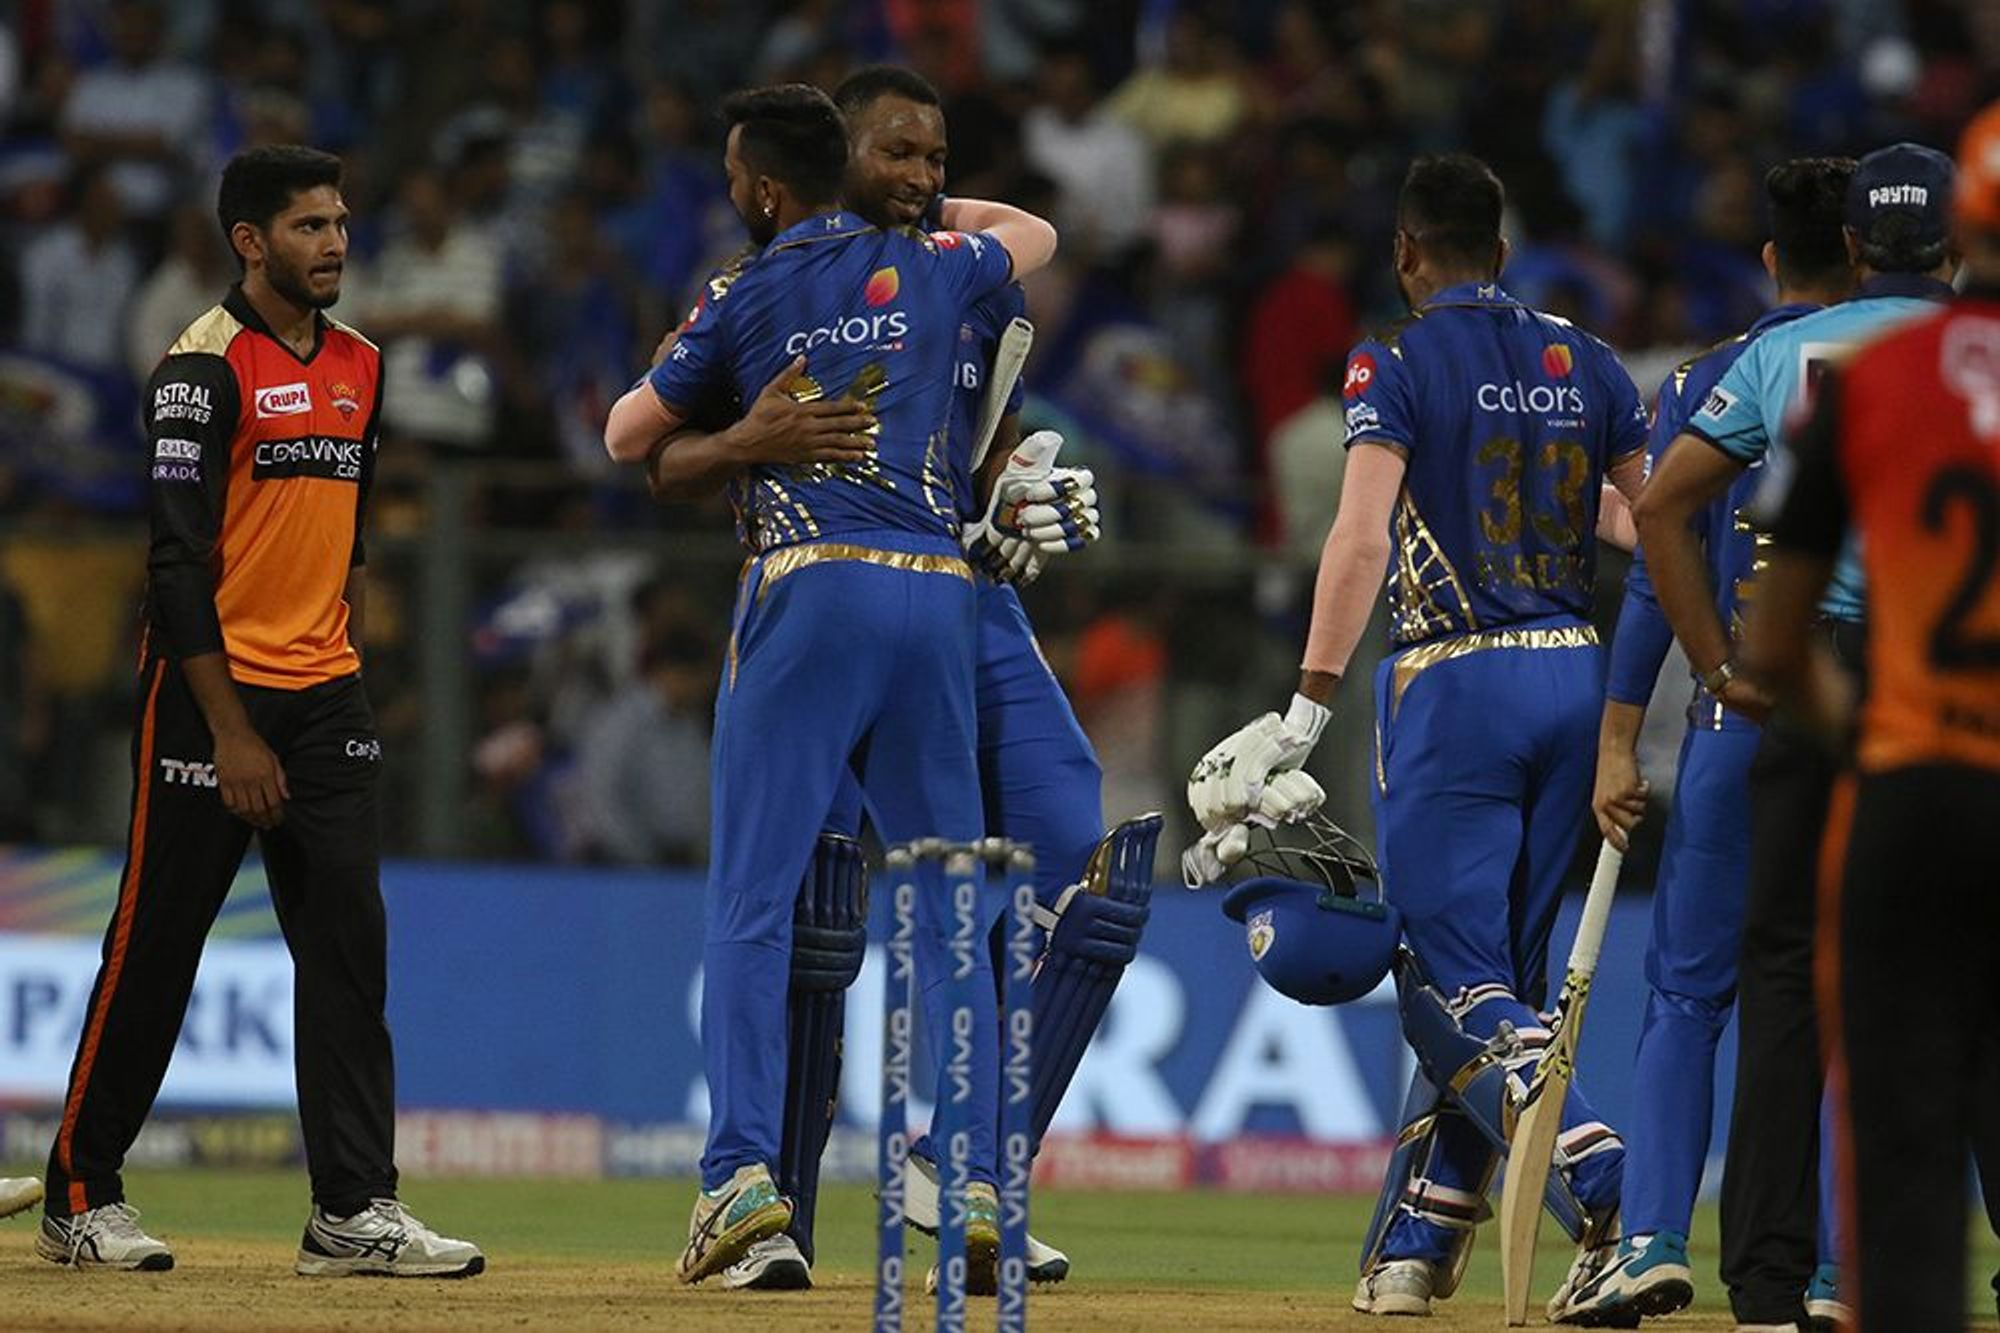 Mumbai Indians, Sunrisers Hyderabad, MI, SRH, Rohit Sharma, NewsMobile, Sports, Cricket, IPL, 2019, Mobile, News, India